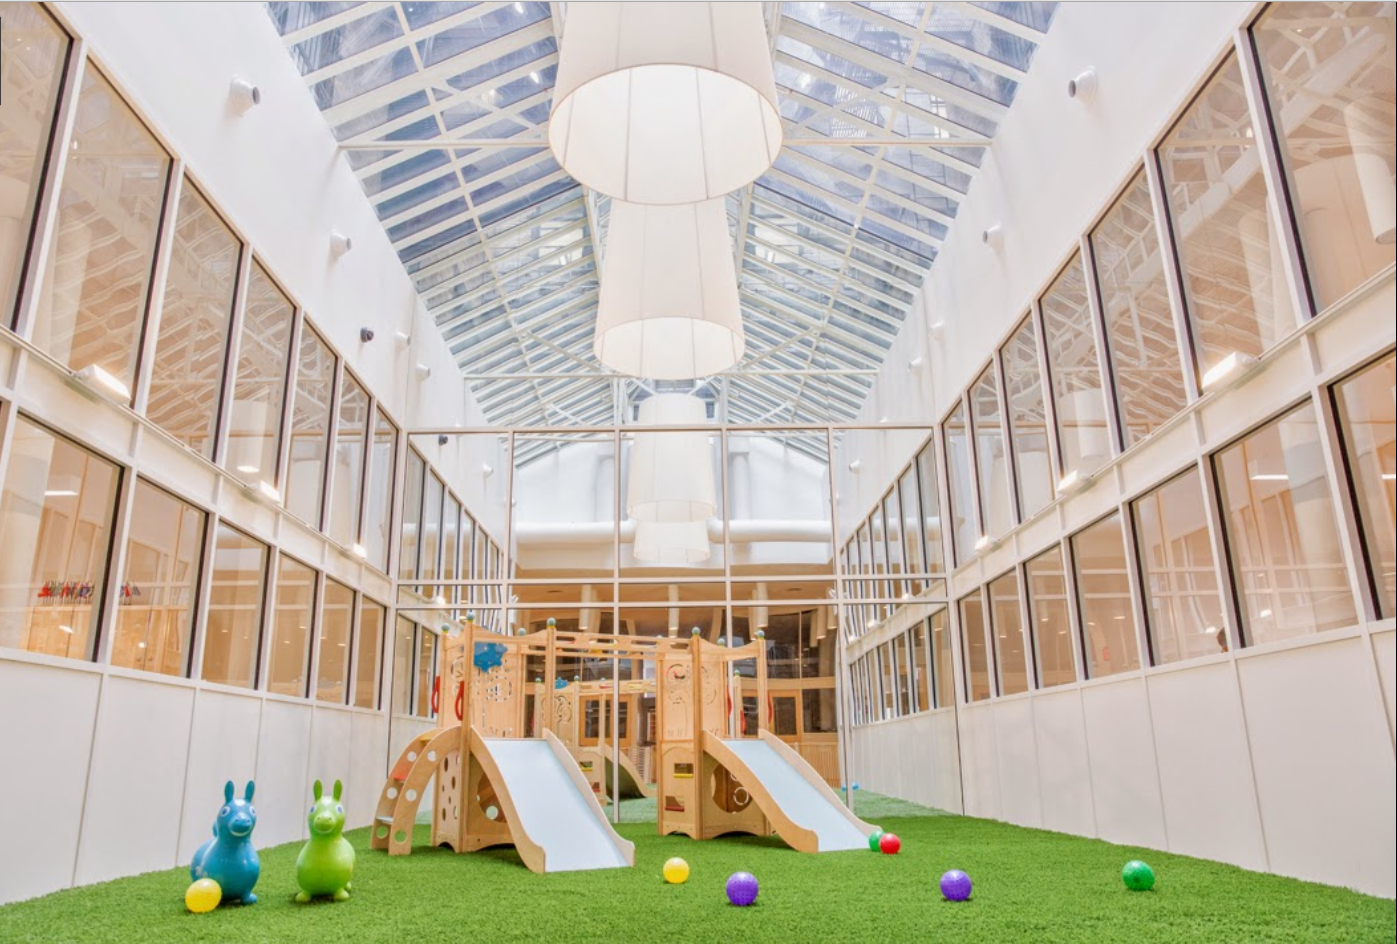 Brightly lit playroom with slides and an inside playground at the Flatiron location of the Montessori School. MEP Engineering provided by 2L Engineering.